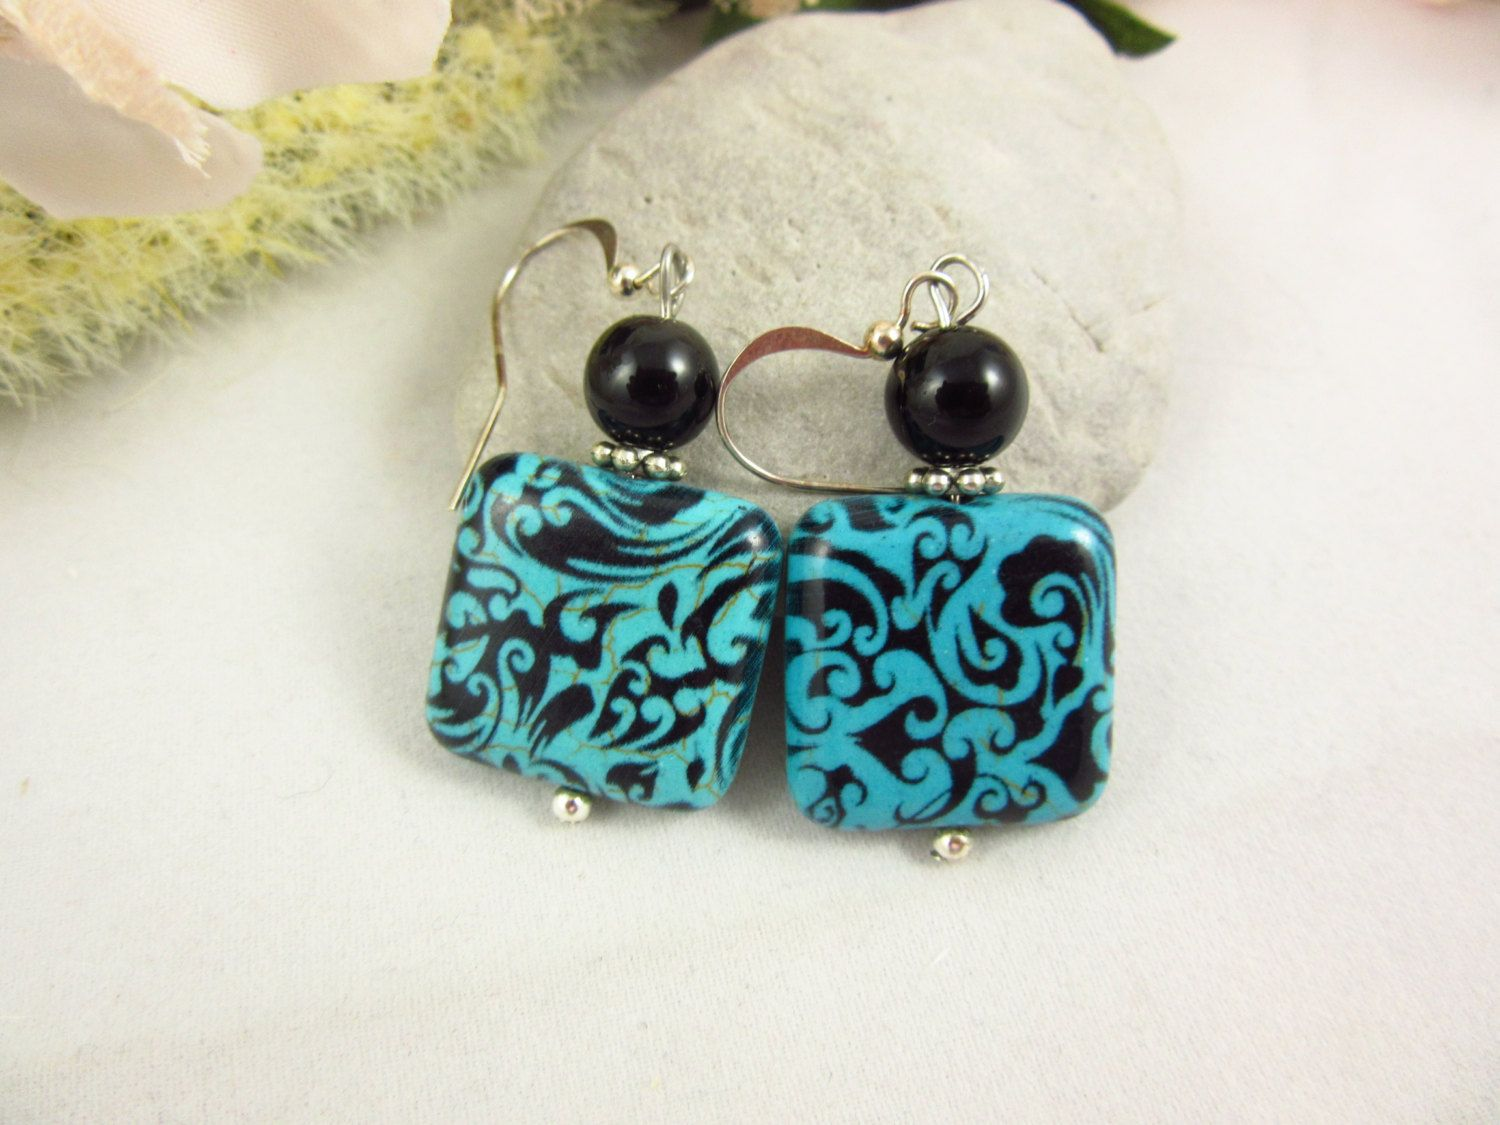 Ceramic Dangle Earrings Turquoise and Black Earrings Handmade Dangle Earrings by PMOriginals on Etsy